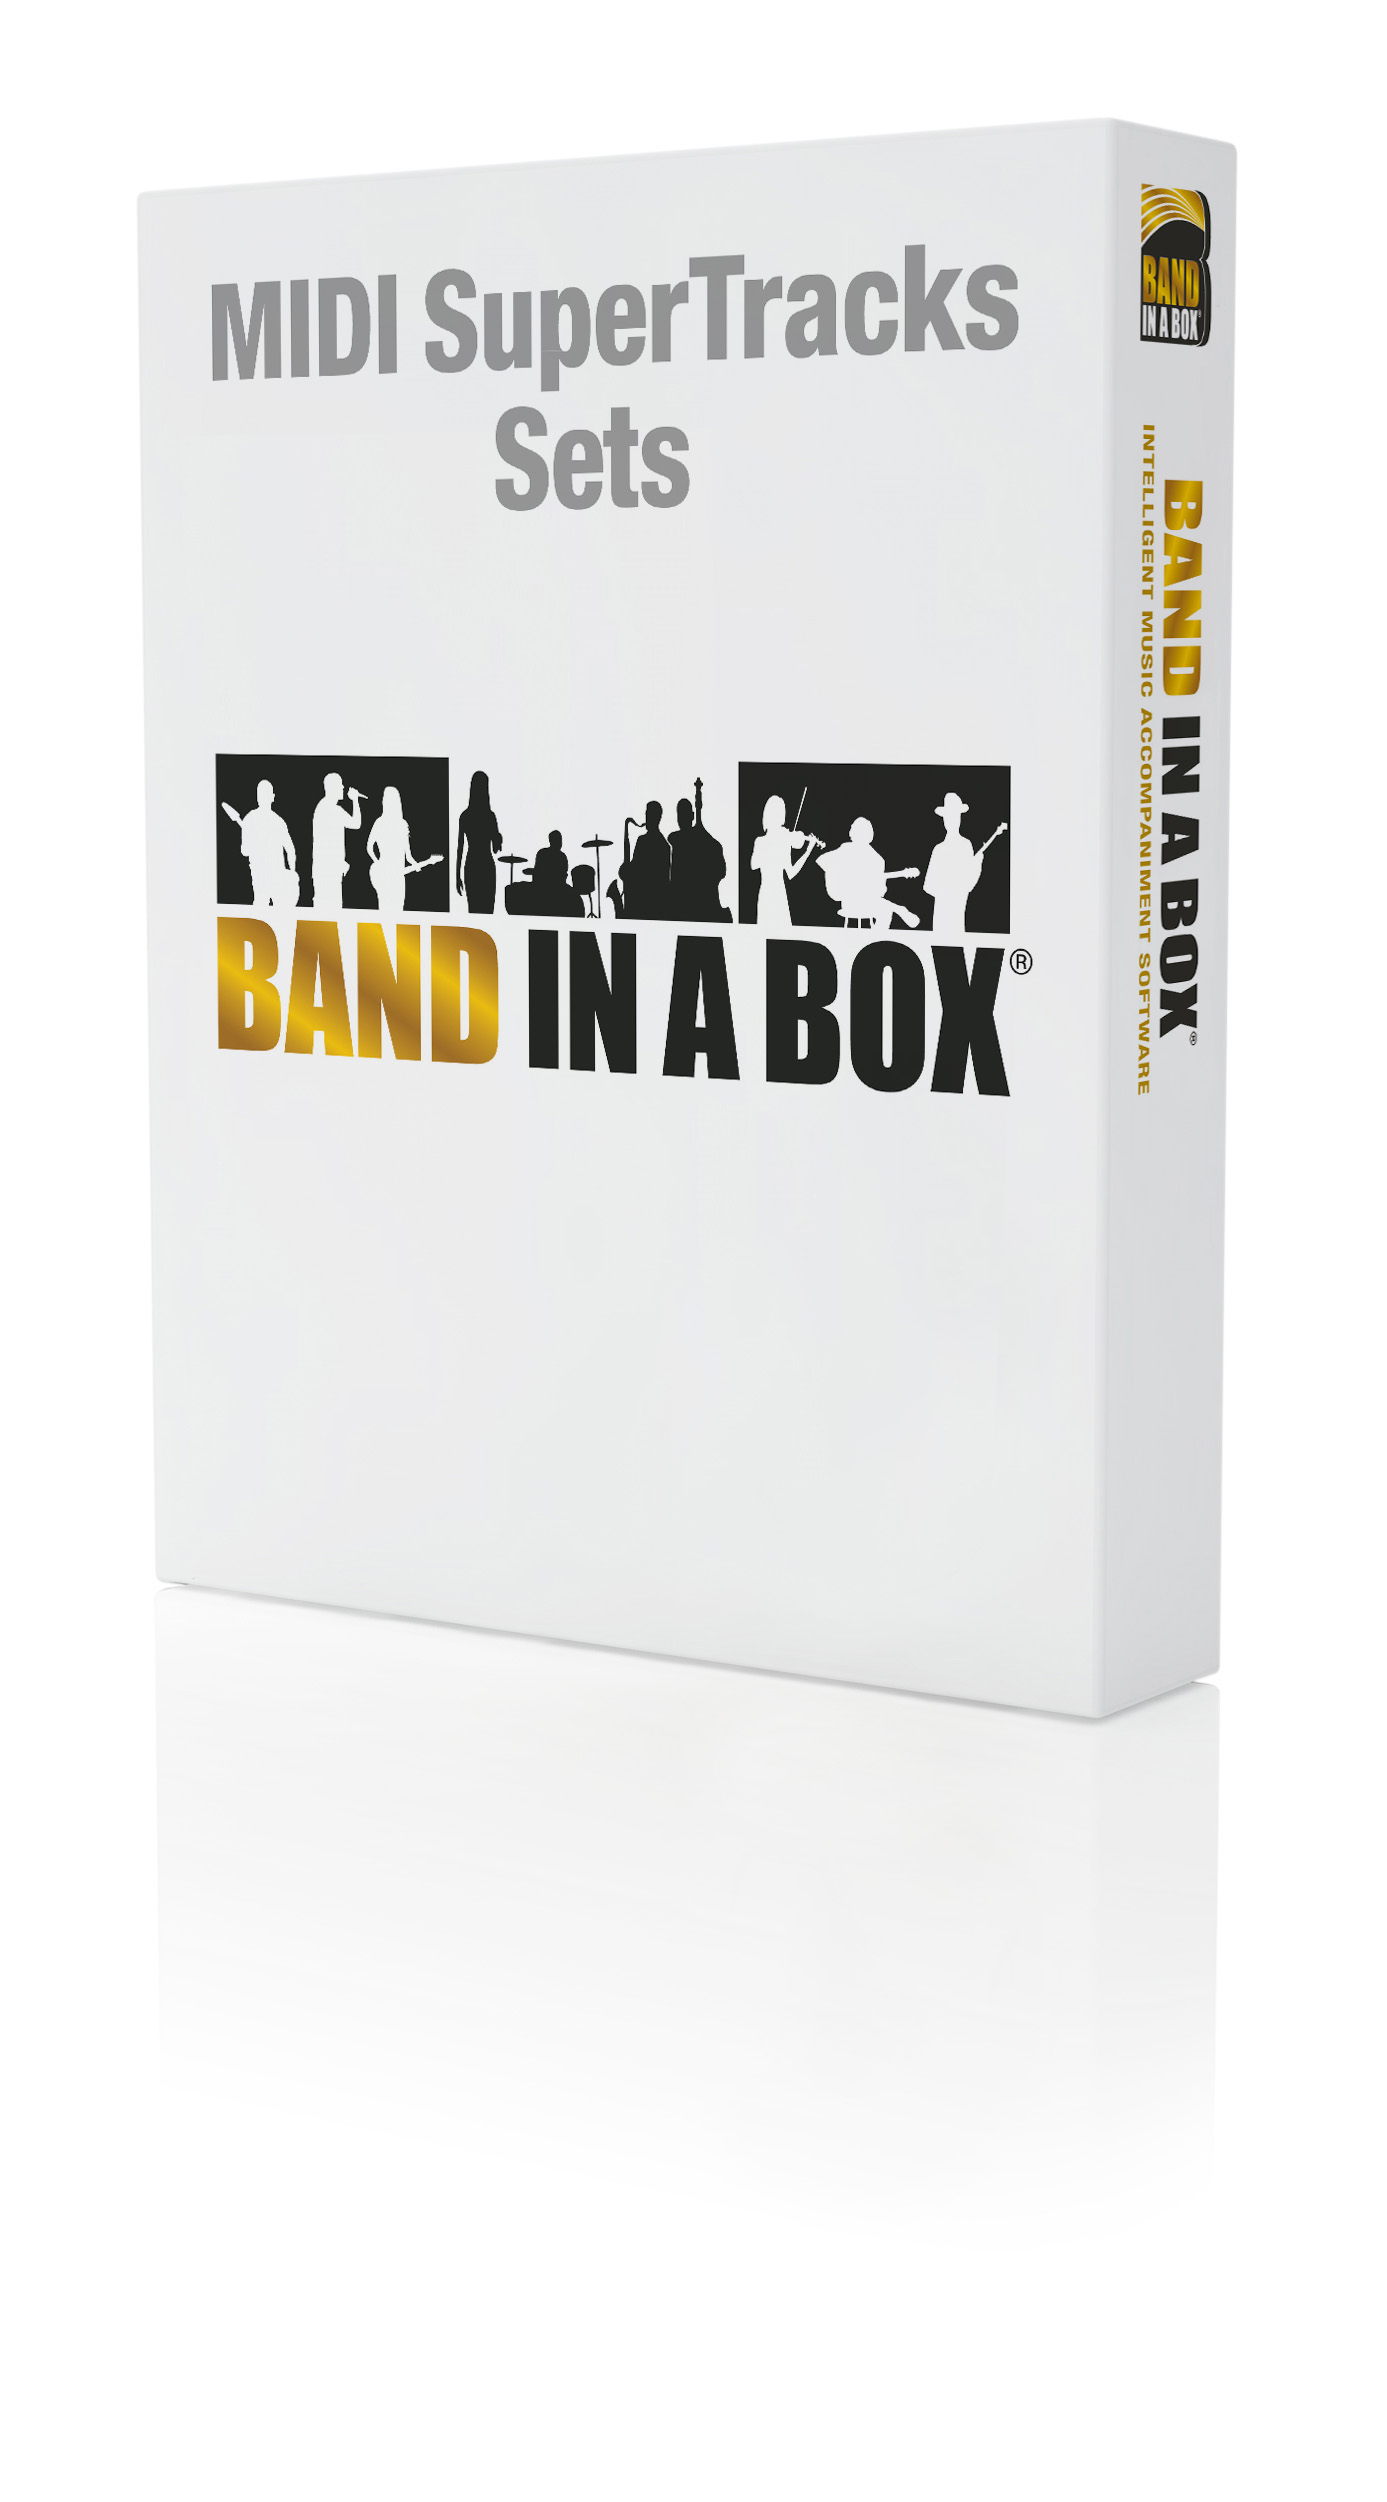 PG Music - Band-in-a-Box for Windows - MIDI SuperTracks Sets